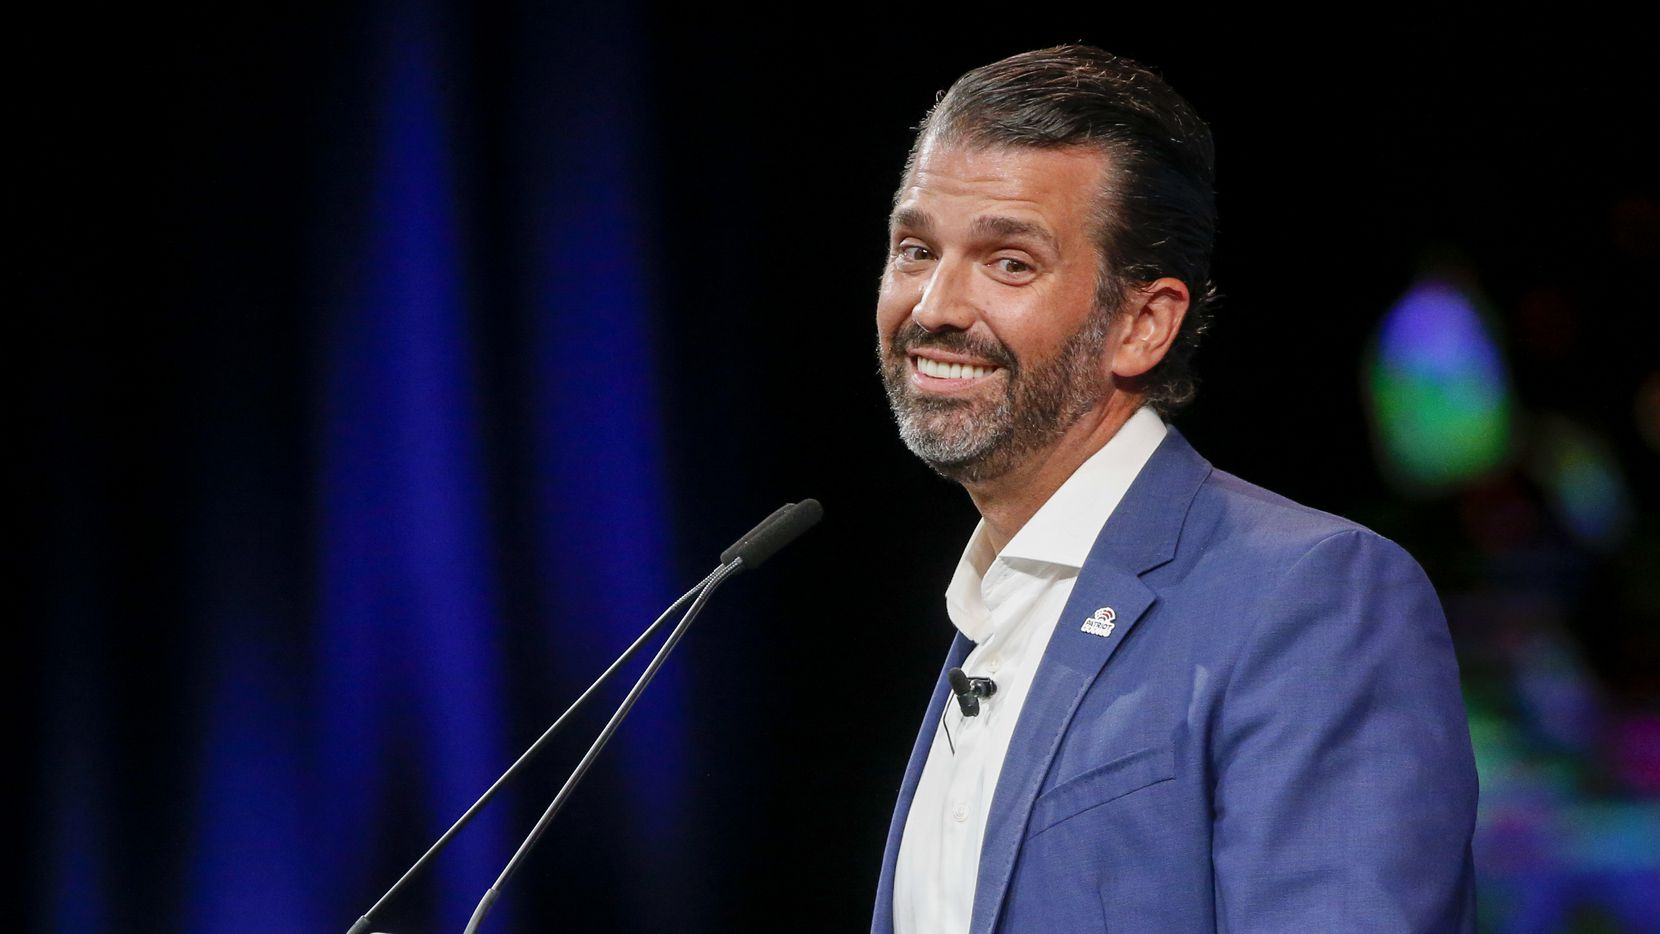 Donald Trump Jr. speaks at the Conservative Political Action Conference on Friday, July 9, 2021, in Dallas.